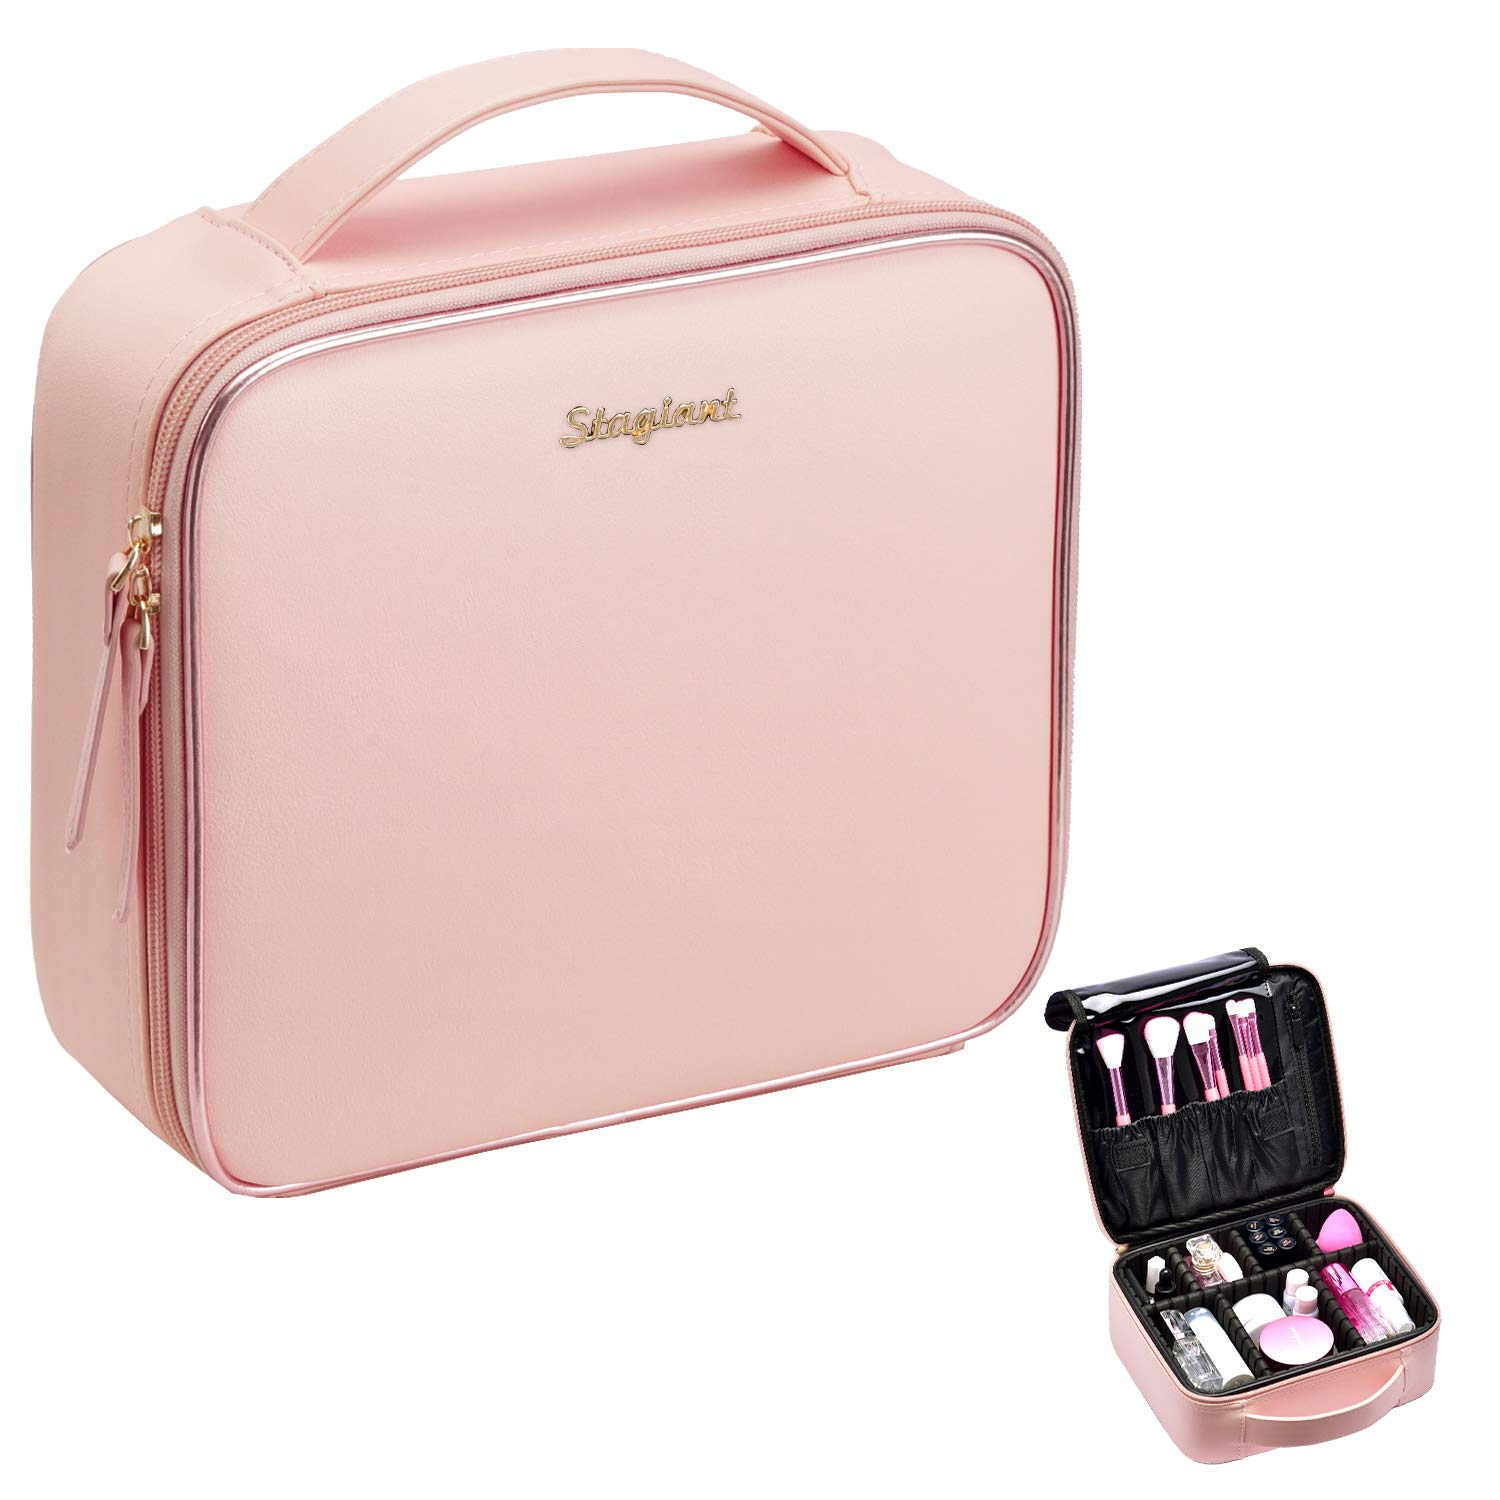 Stagiant Makeup Bag Portable Travel Makeup Train Case PU Leather Cosmetic Storage Organizer with Dividers for Girl Cosmetic Make Up Tools Toiletry Jewelry Digital Accessories - Rose Gold